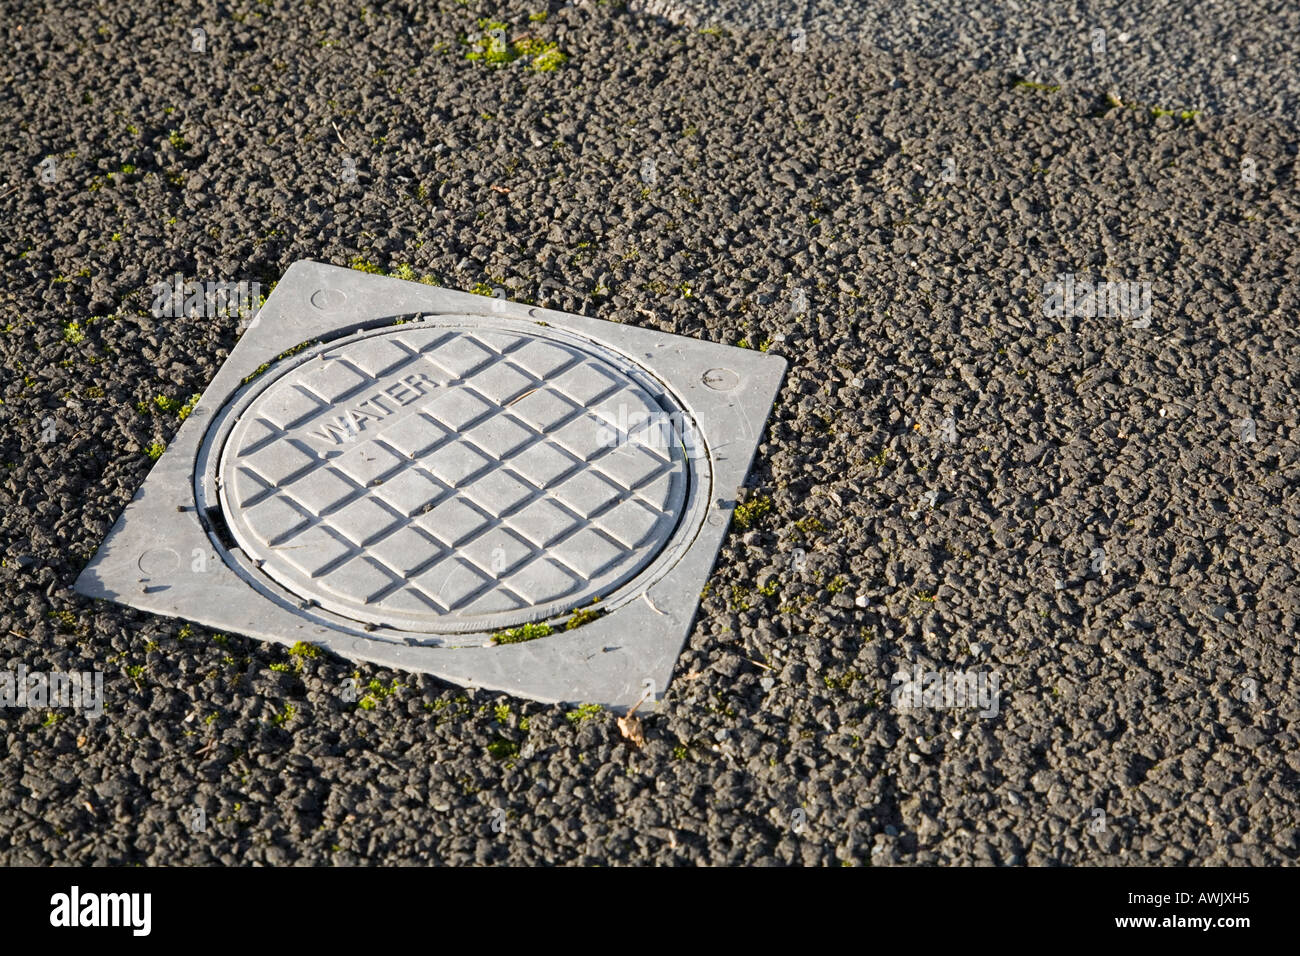 Water access cover on a tarmac pavement - Stock Image